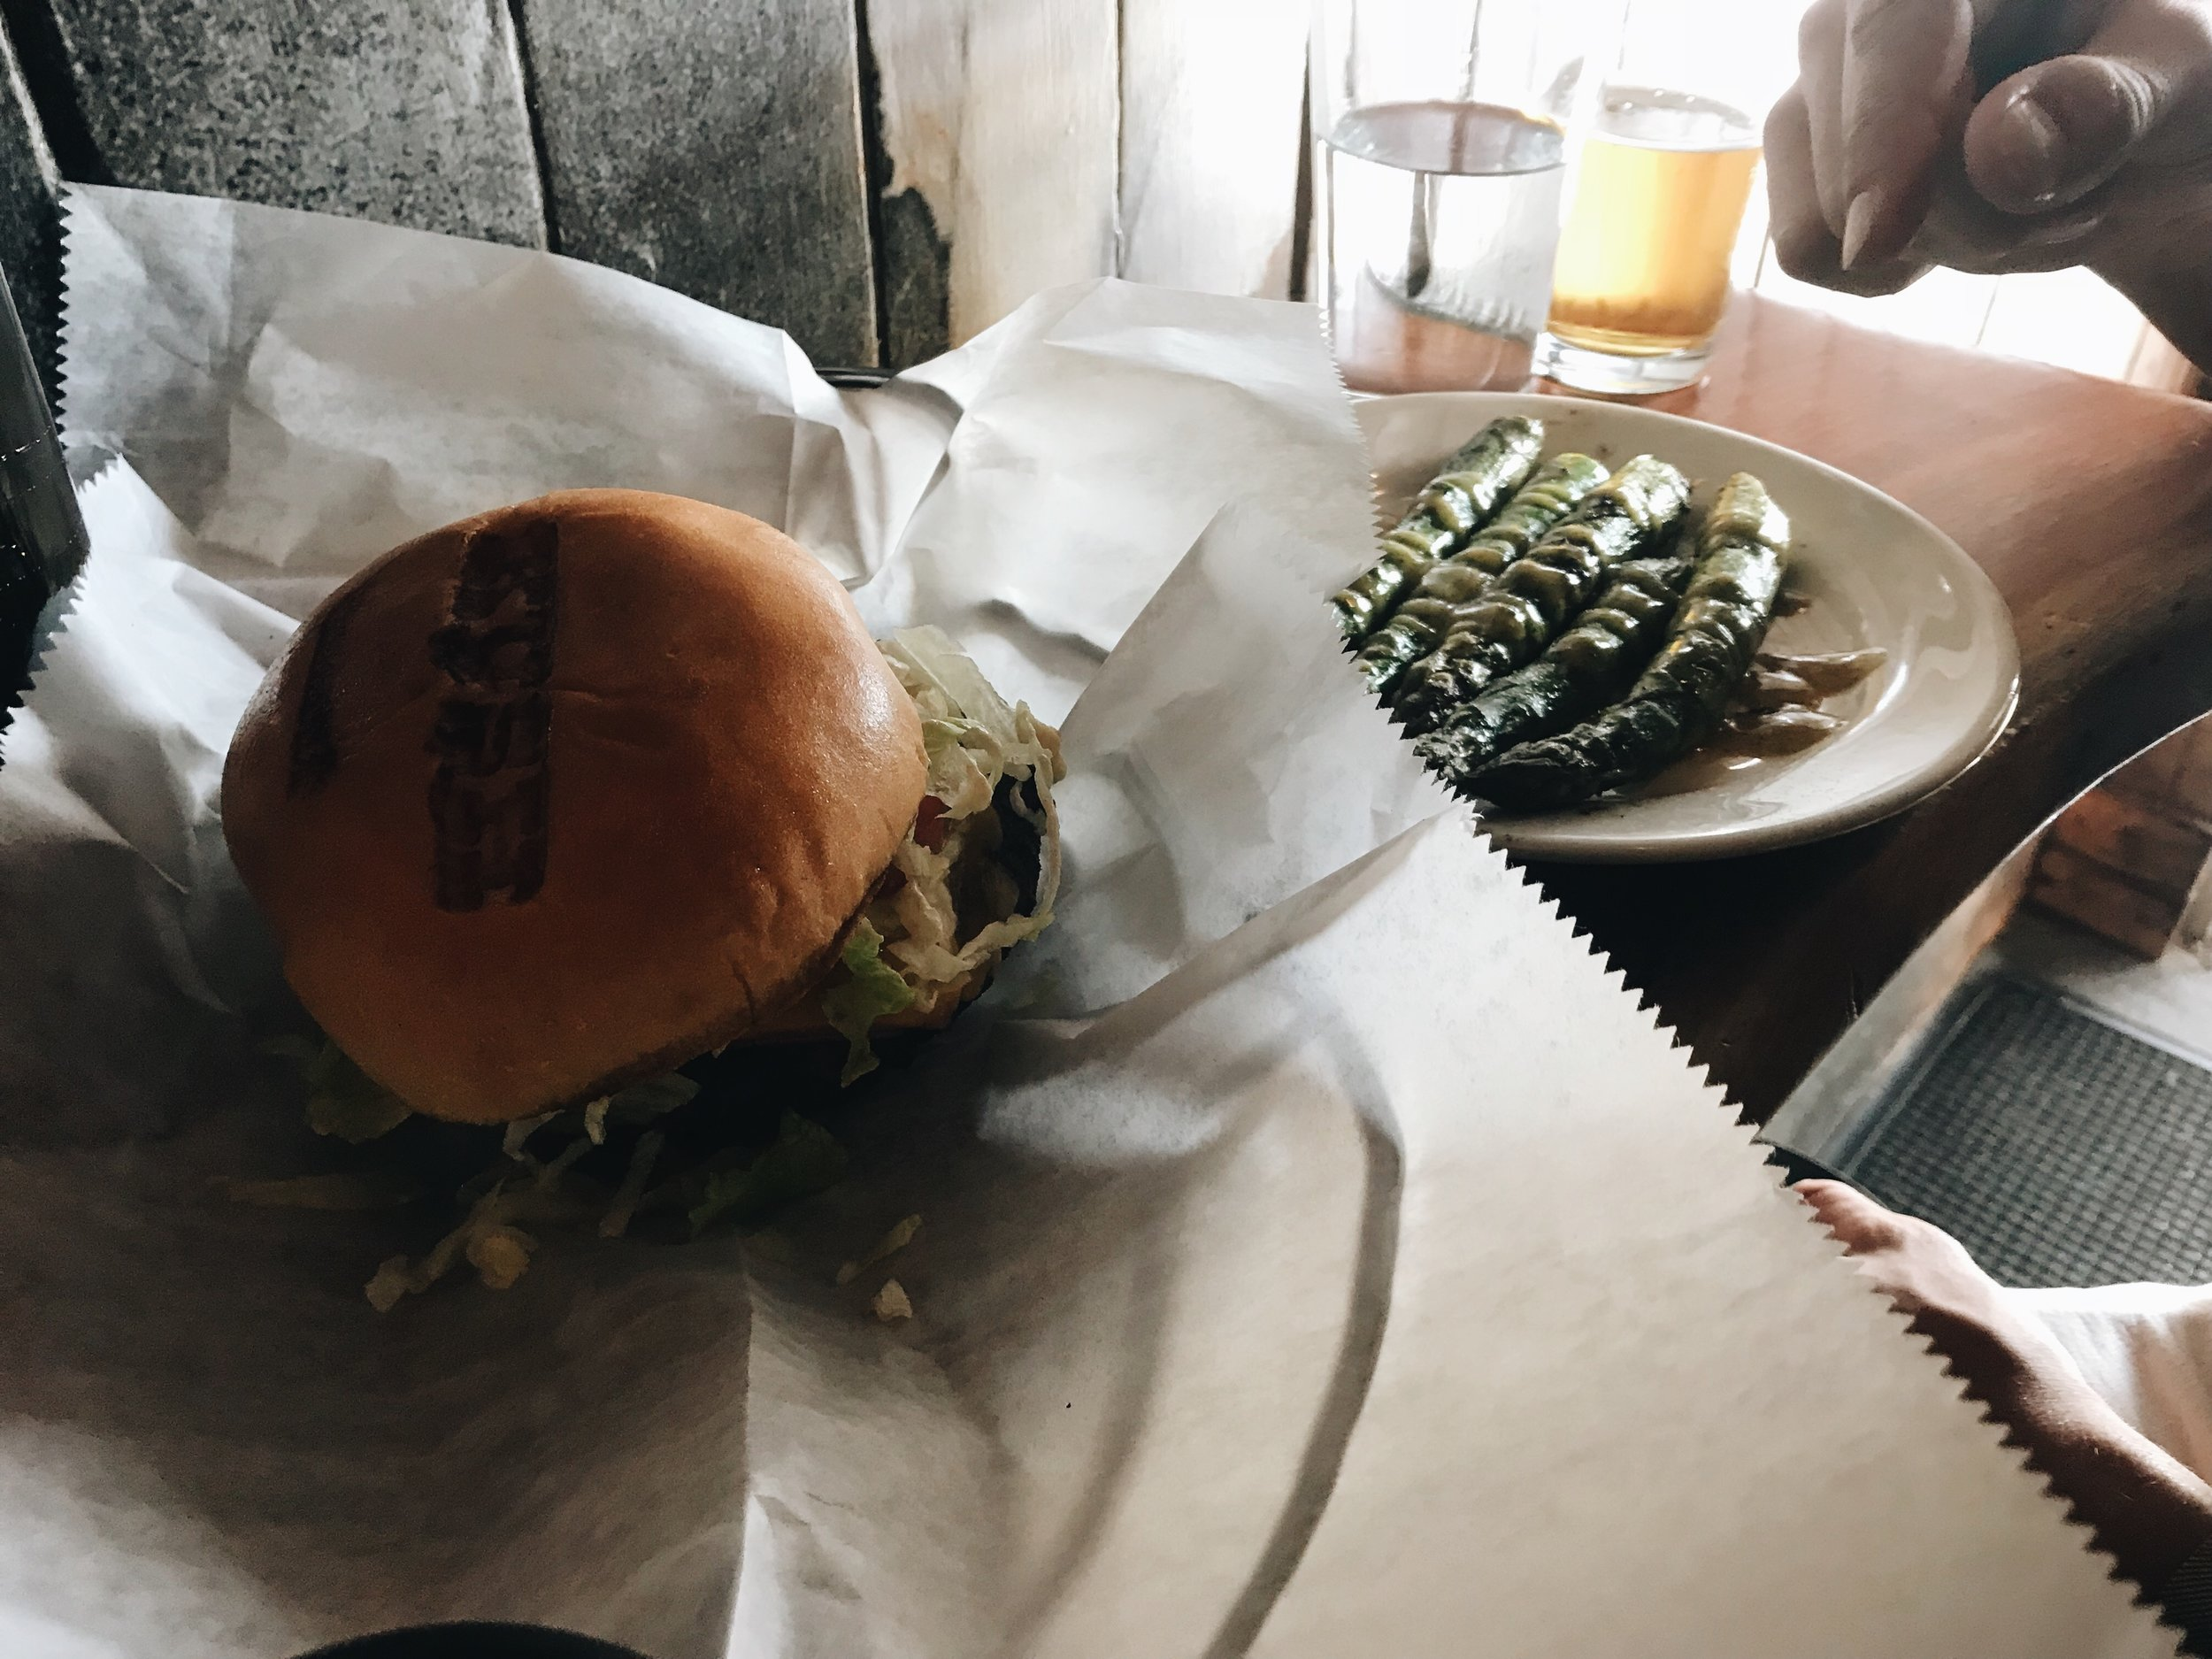 the Johnny Utah burger with a side of asparagus.